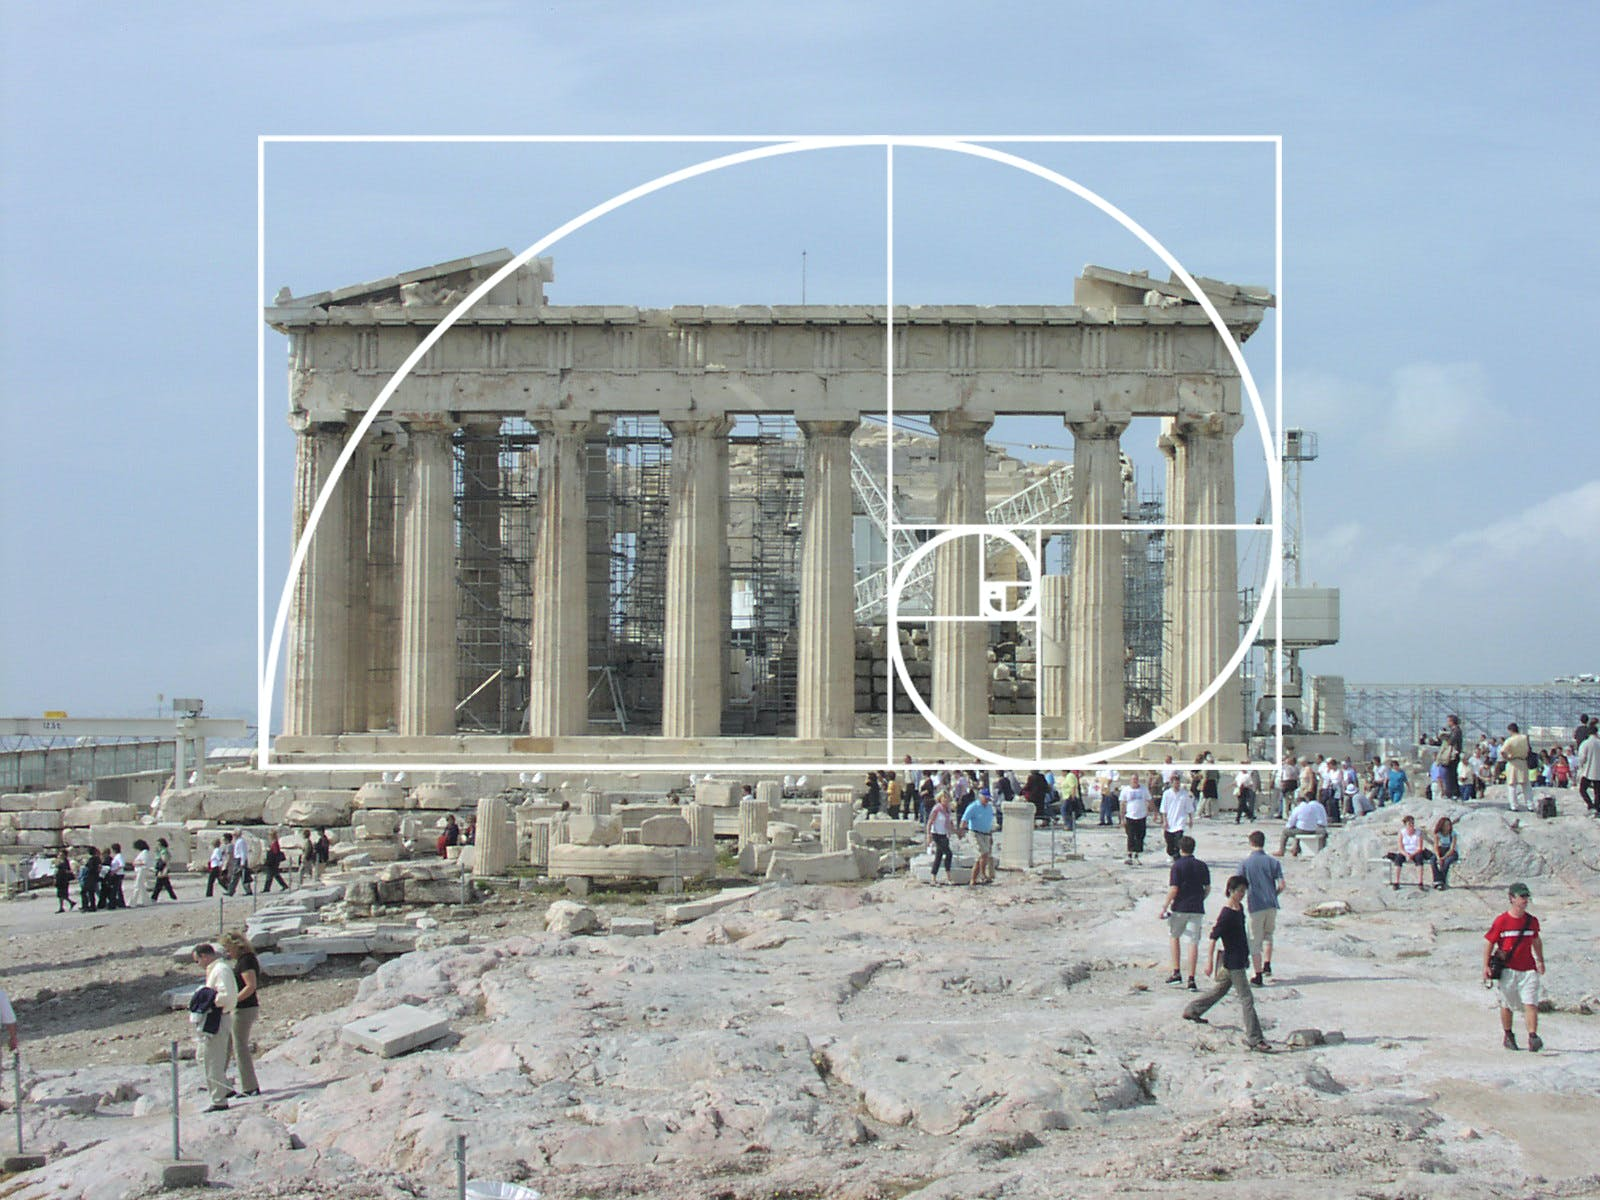 Photo of the Parthenon by Sbastien Bertrand on Flickr. Image via  fastcodesign.com